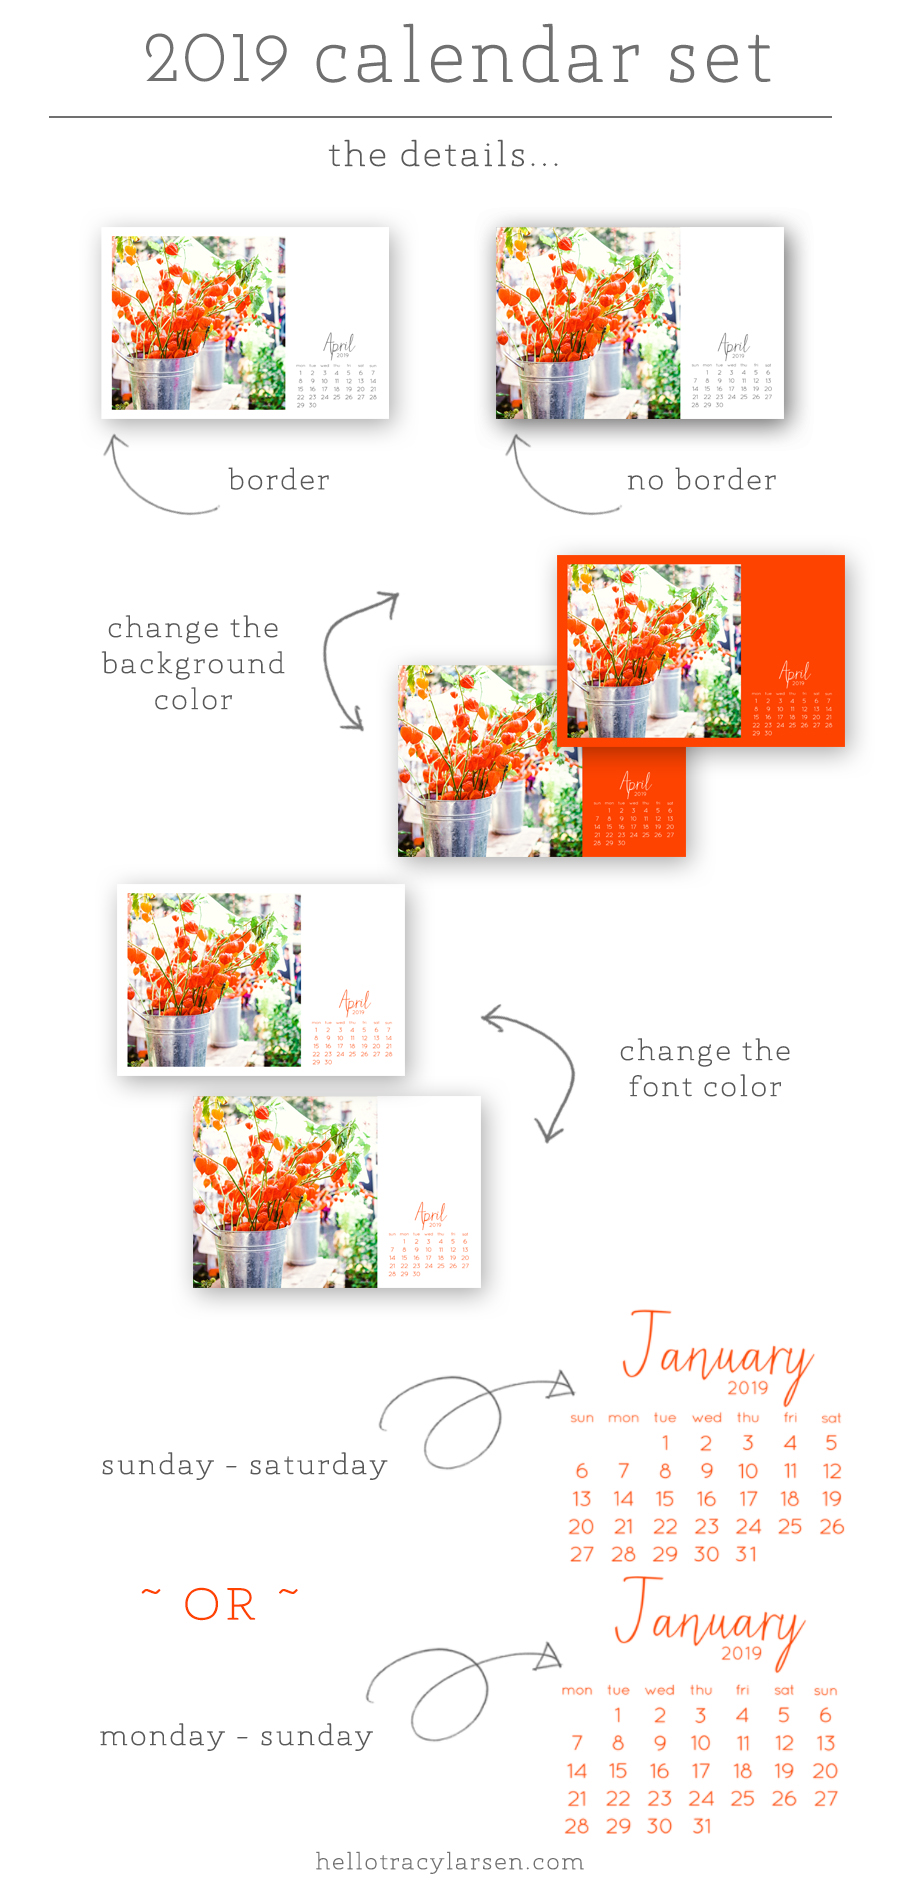 2019 digital calendar photo template 4x6 | digital brush + stamp  | Project Life  | Digital Project Life | Modern Scrapbooking  | Pocket Page Scrapbooking >>> HelloTracyLarsen.com